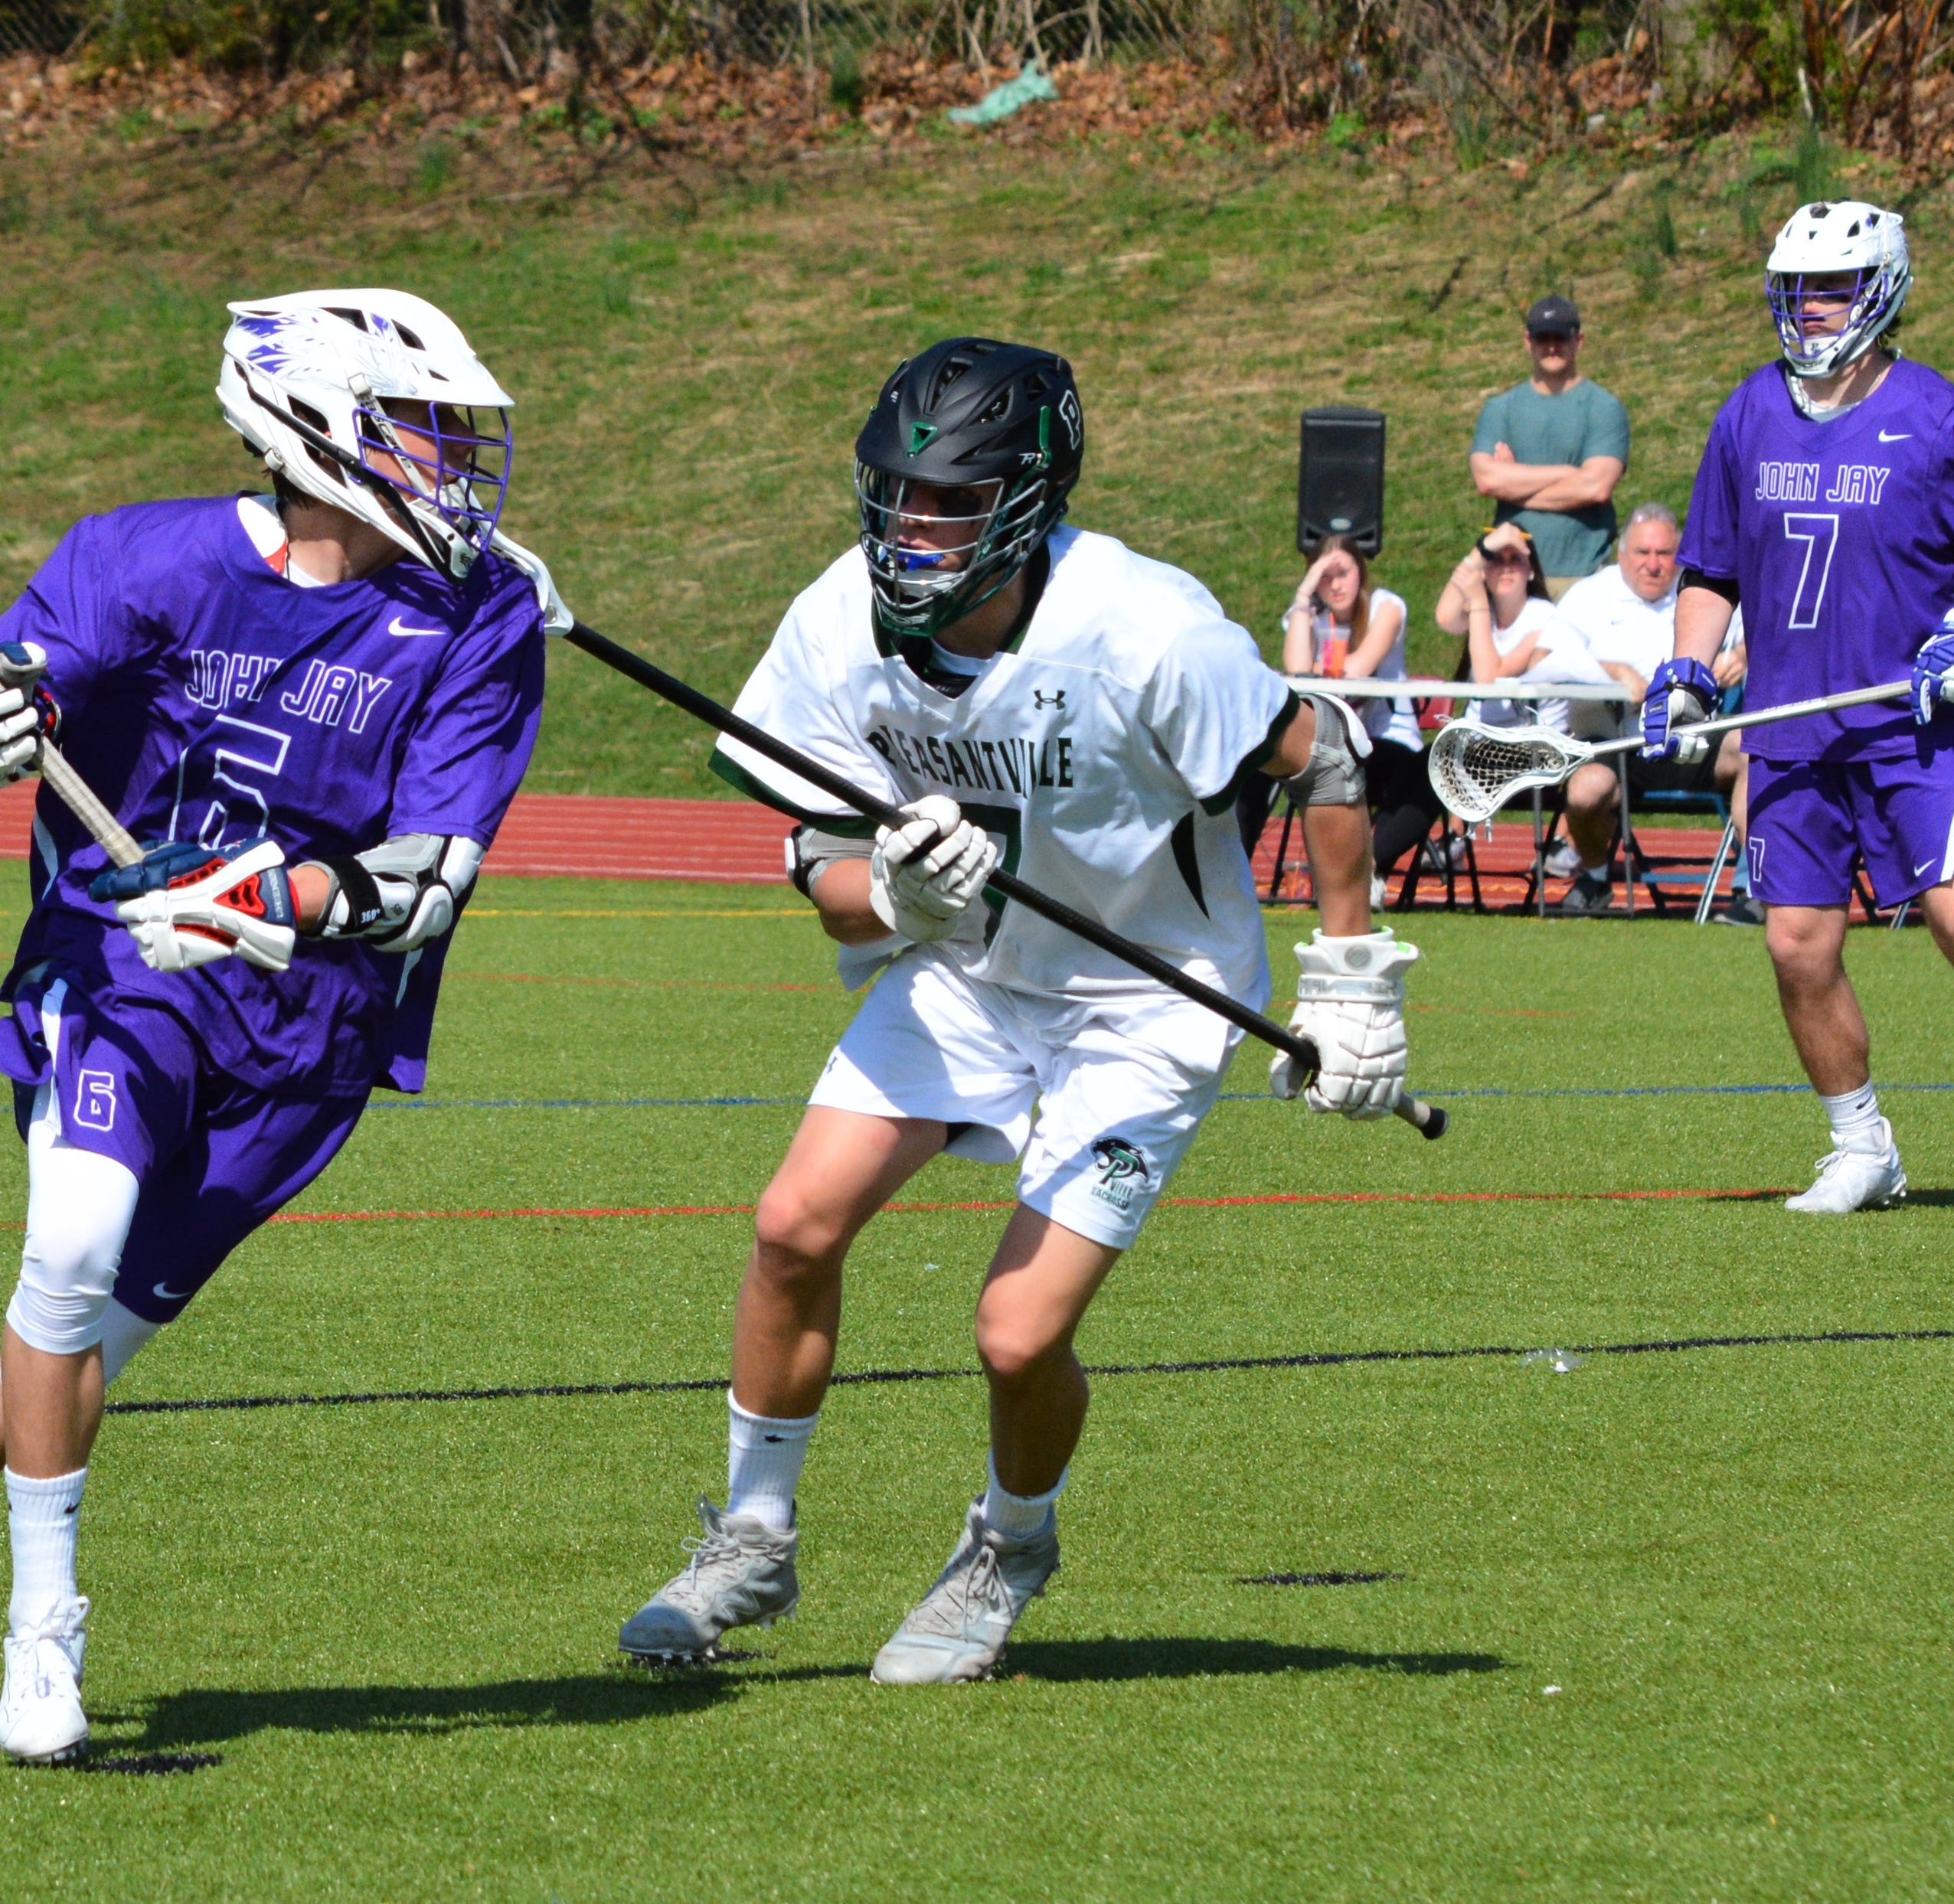 Boys lacrosse rankings: Iona Prep inches up the list of local powers